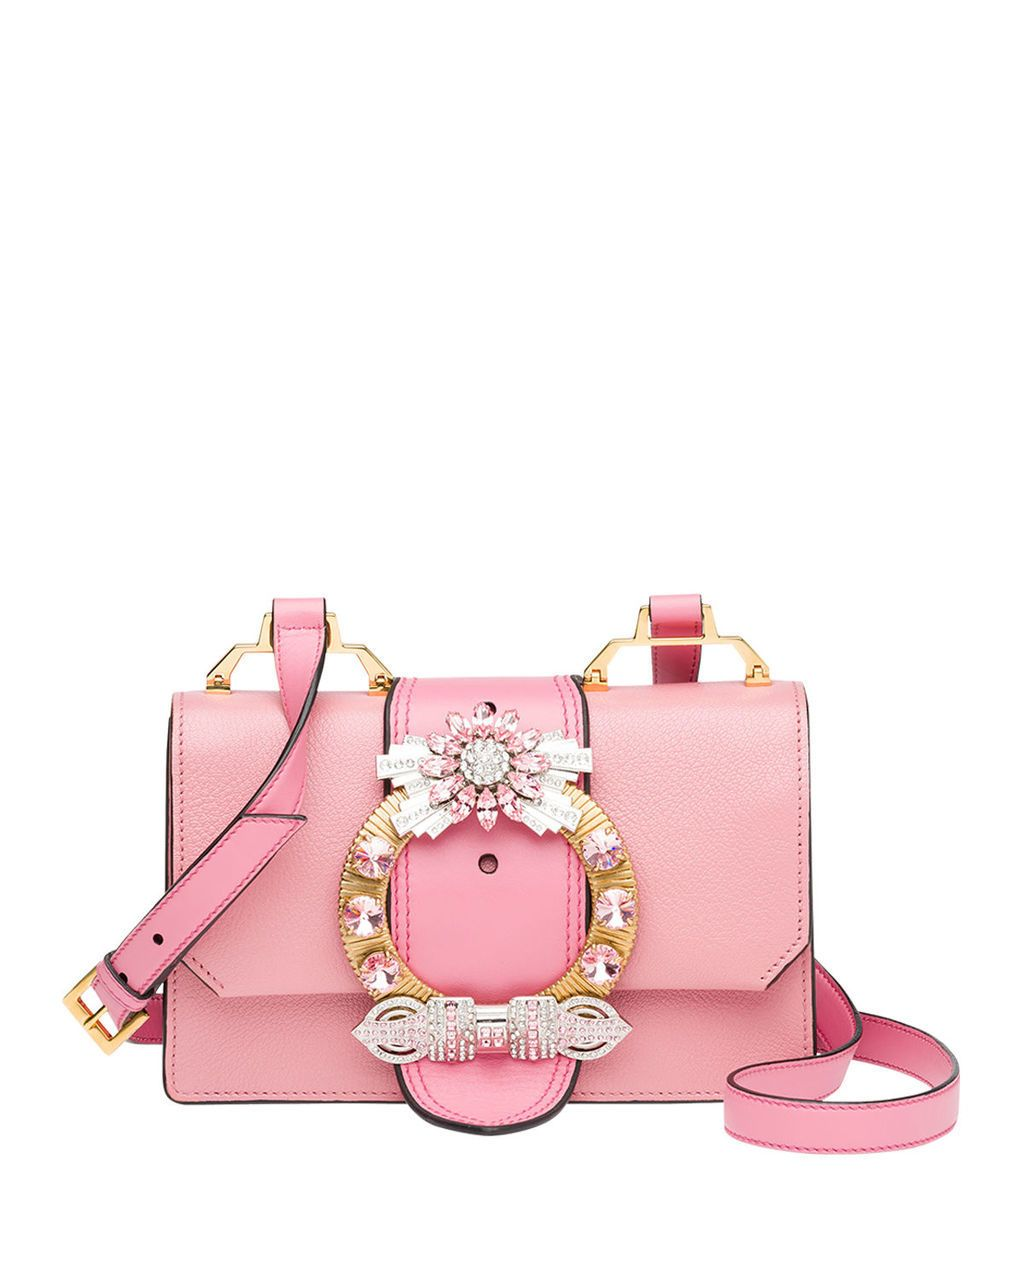 9de0a4297d2f MIU MIU Lady Jeweled Madras Leather Shoulder Bag Rose  1950 FREE S H  (Compare Elsewhere at  2100 + S   H). Weekday Order Pick Up also Available  - MIRABELLE ...